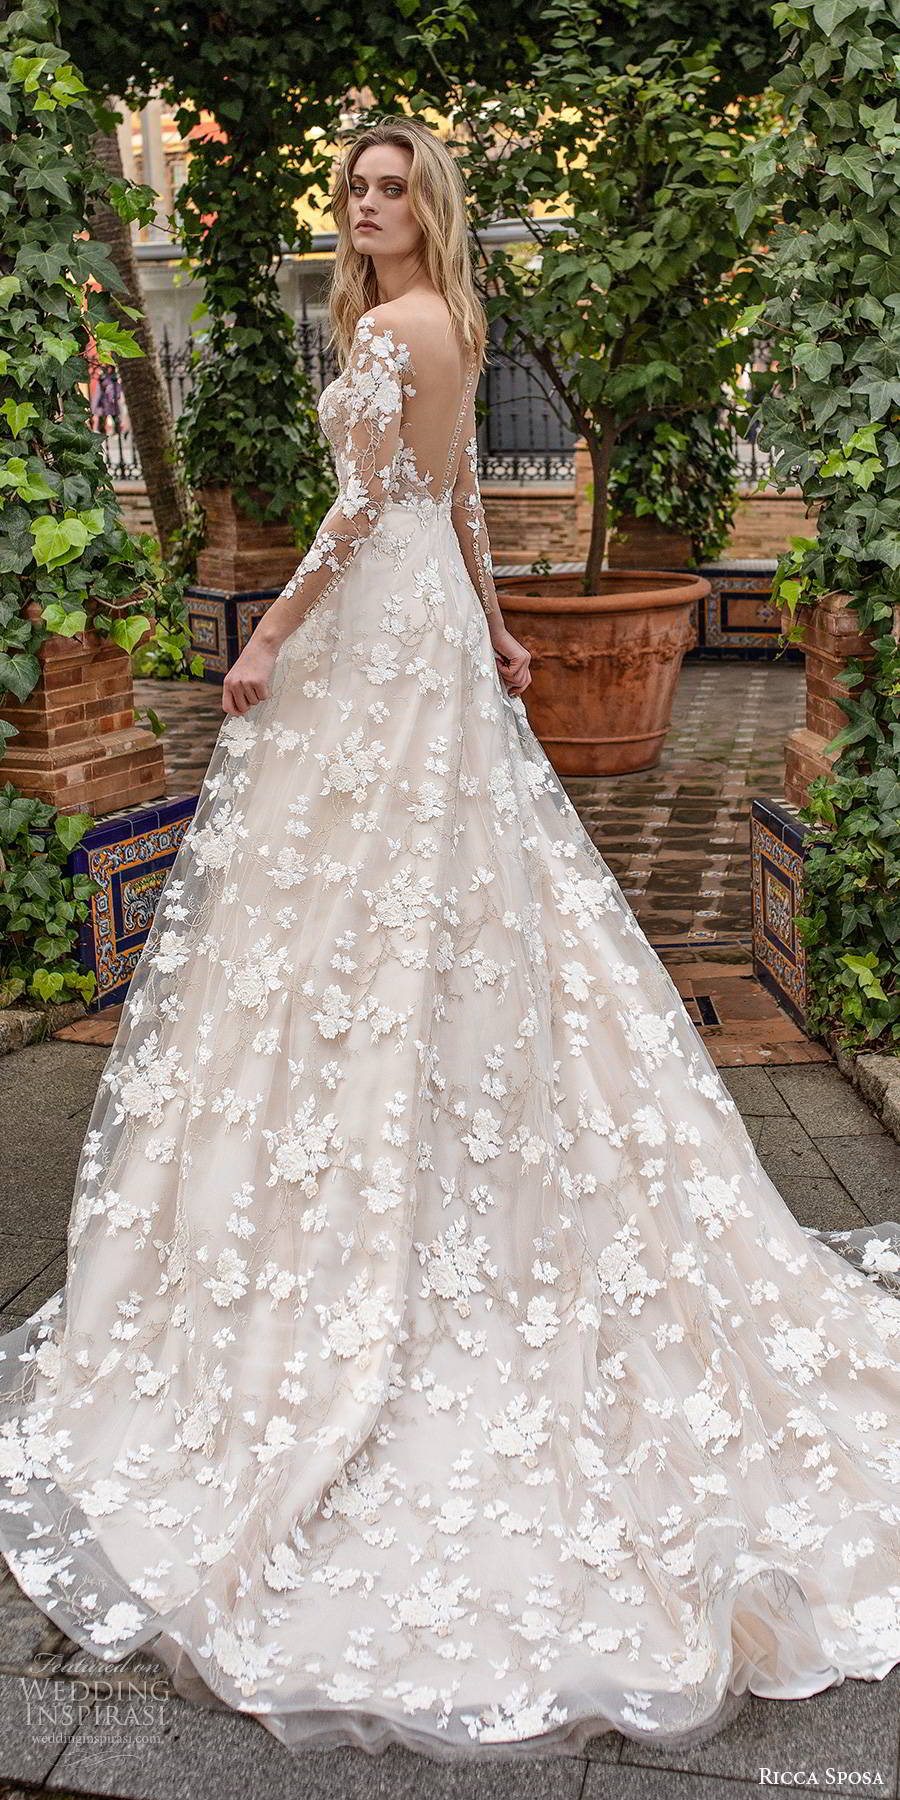 ricca sposa 2019 bridal illusion long sleeves off shoulder sweetheart neckline fully embellished elegant a line wedding dress illusion back cathedral train (6) bv